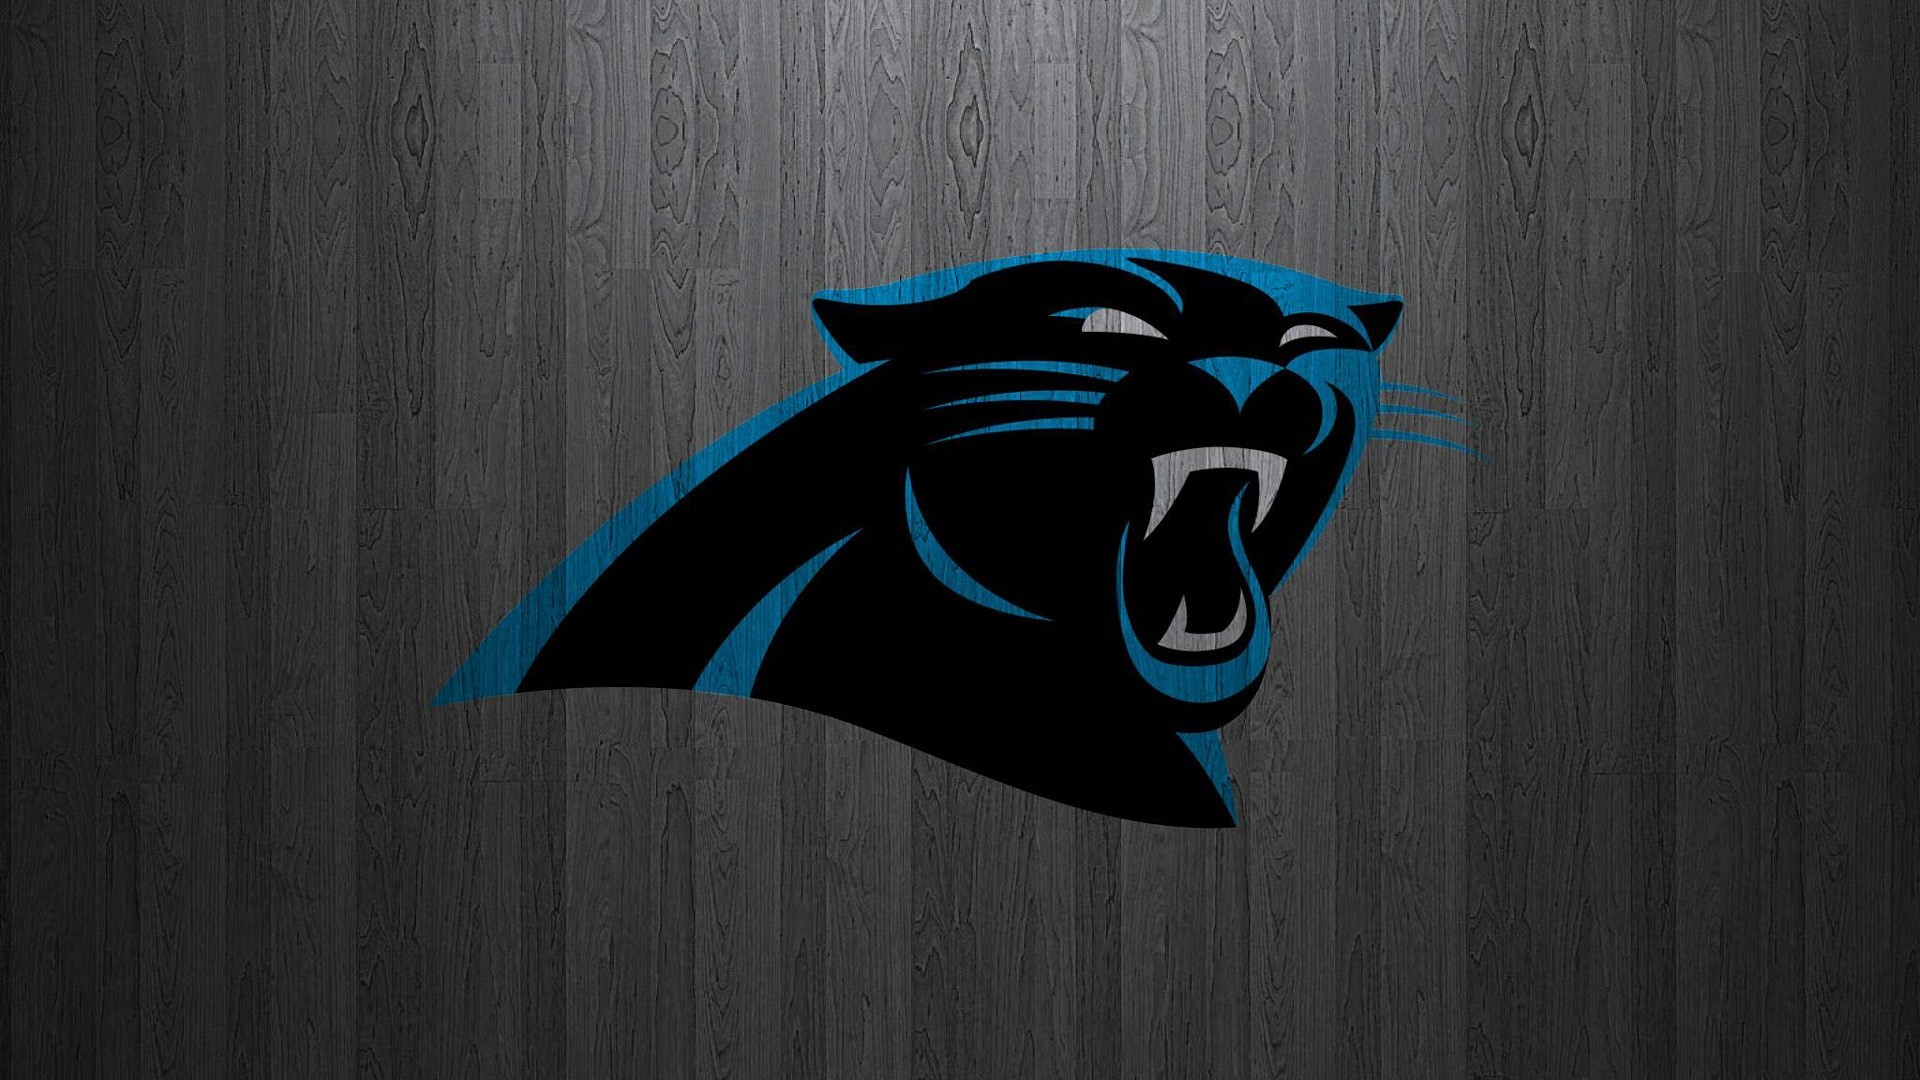 1920x1080 DeviantArt: More Like Carolina Panthers Wallpaper by JdotdaP 1920×1080 Carolina  Panthers Desktop Wallpapers (37 Wallpapers) | Adorable Wallpapers ...